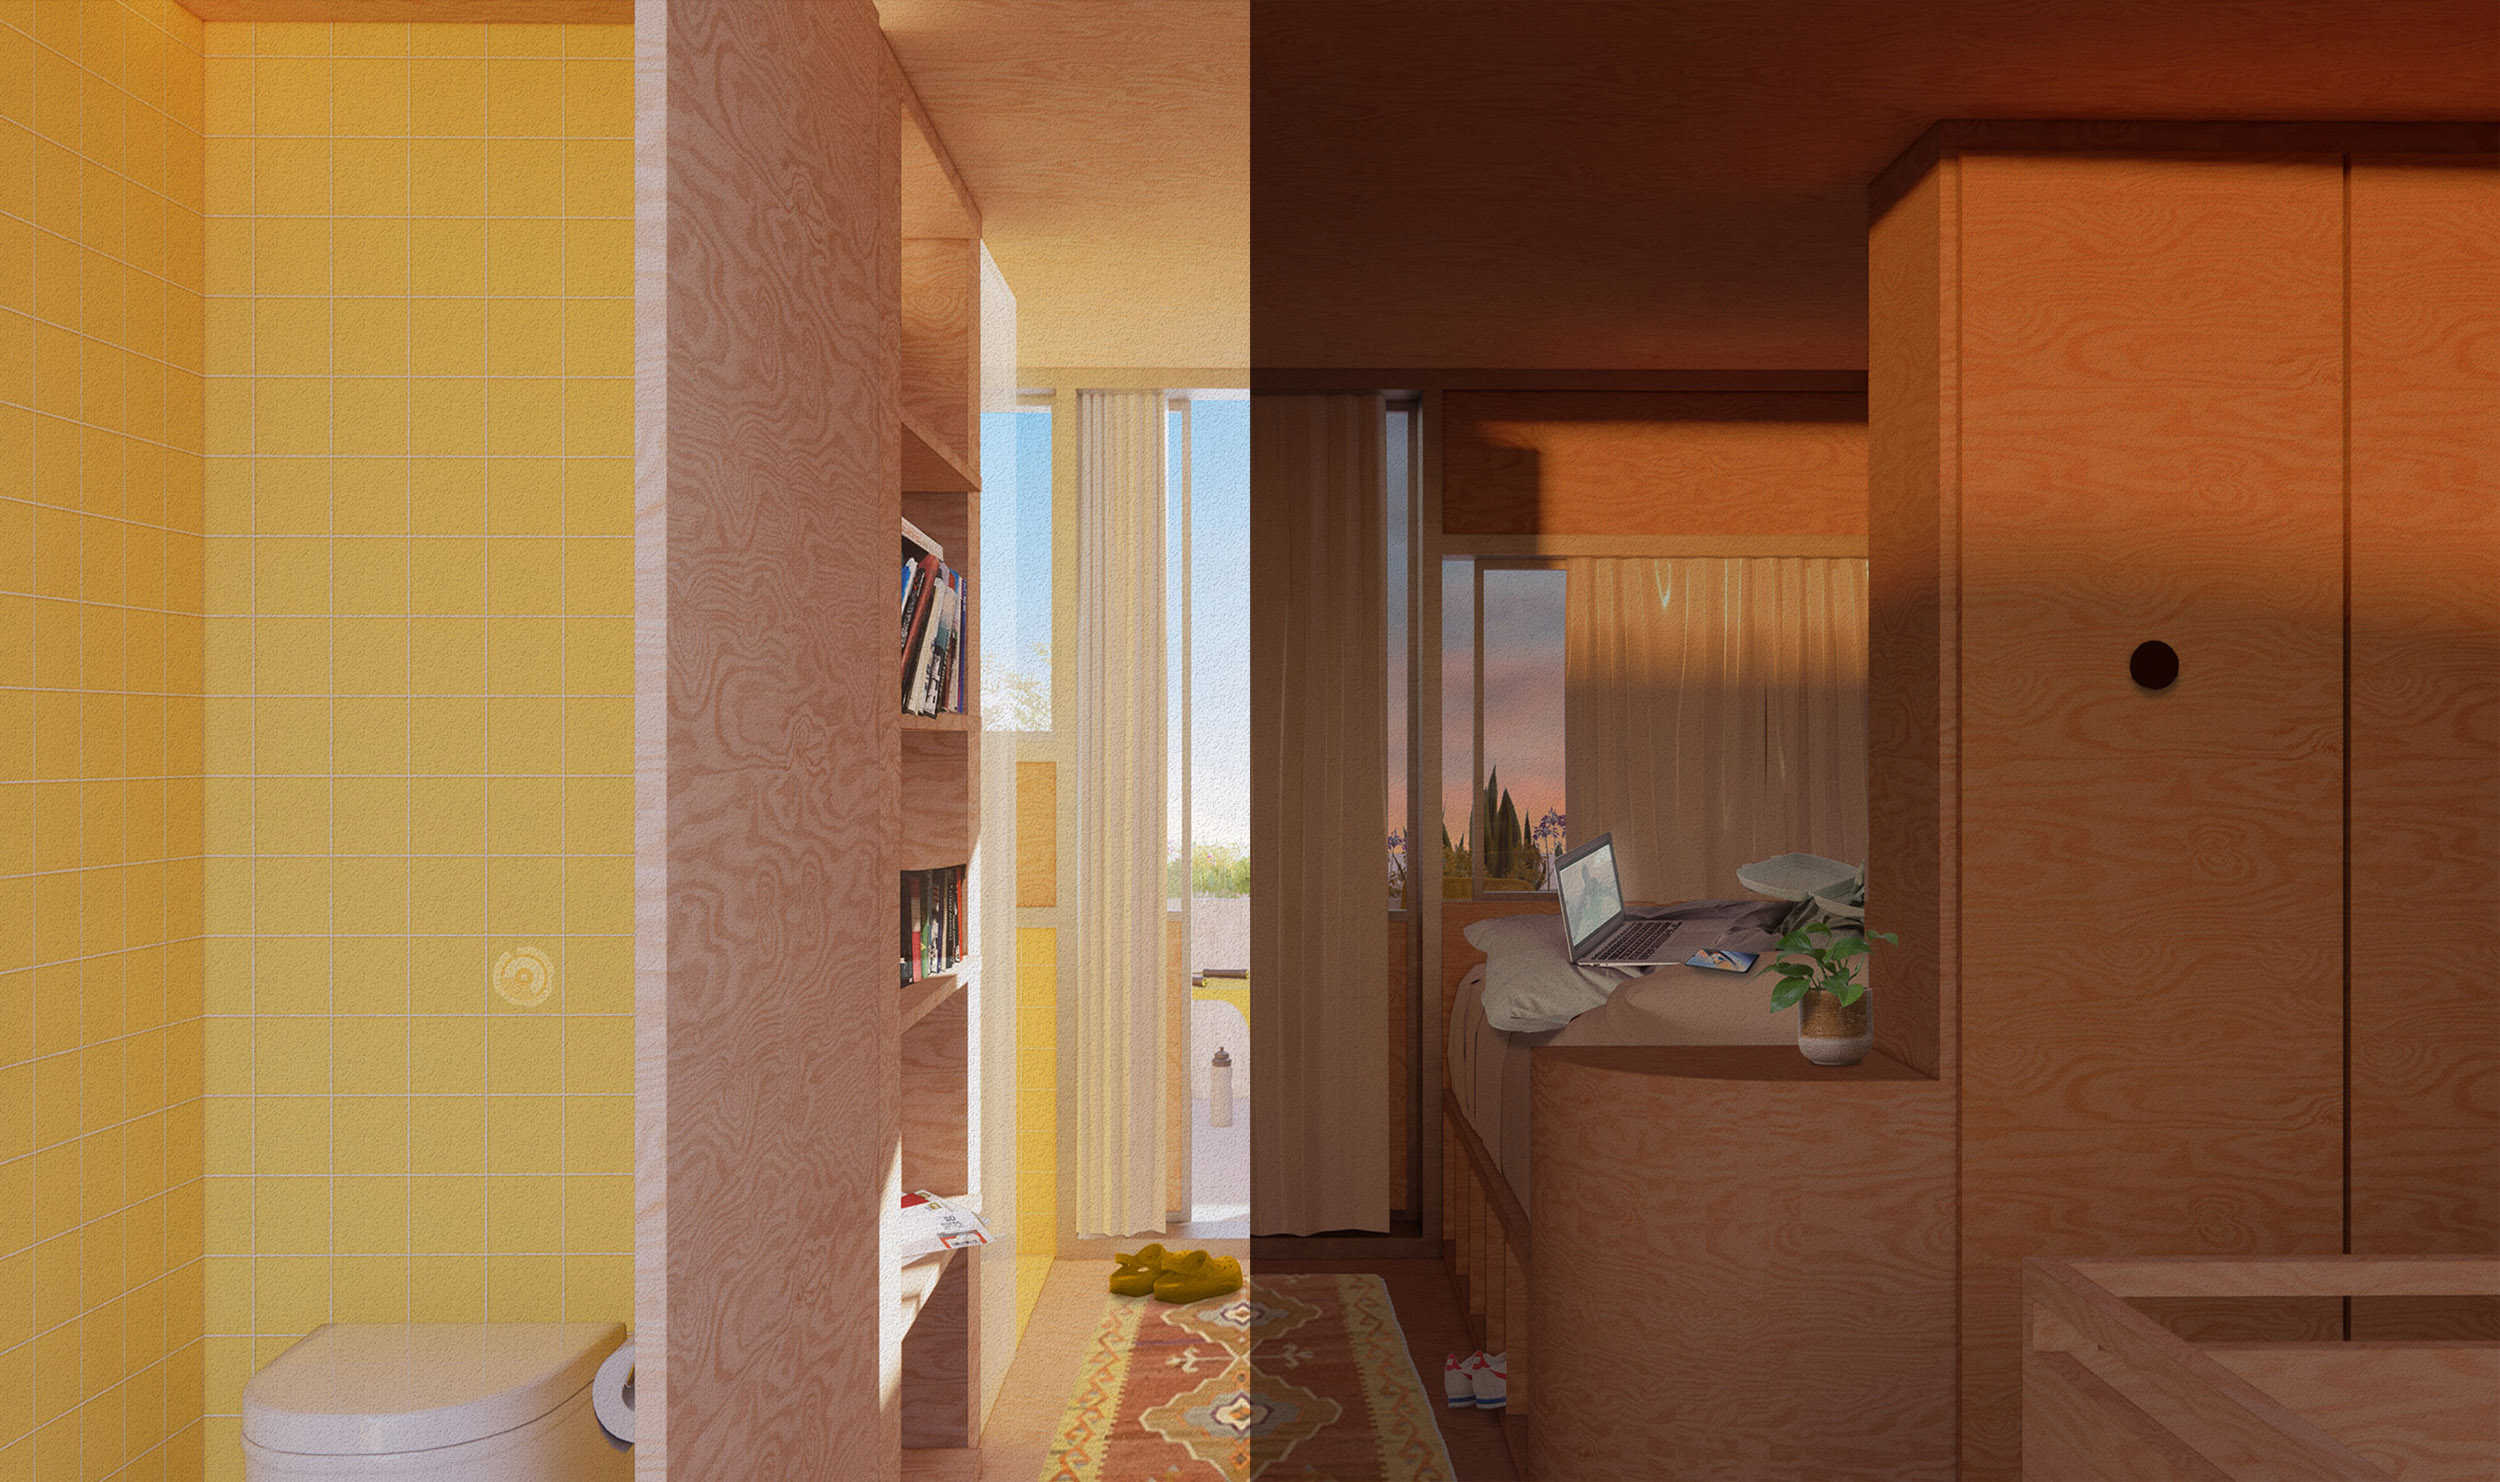 A remote-worker's bedroom (day/night visualisation)